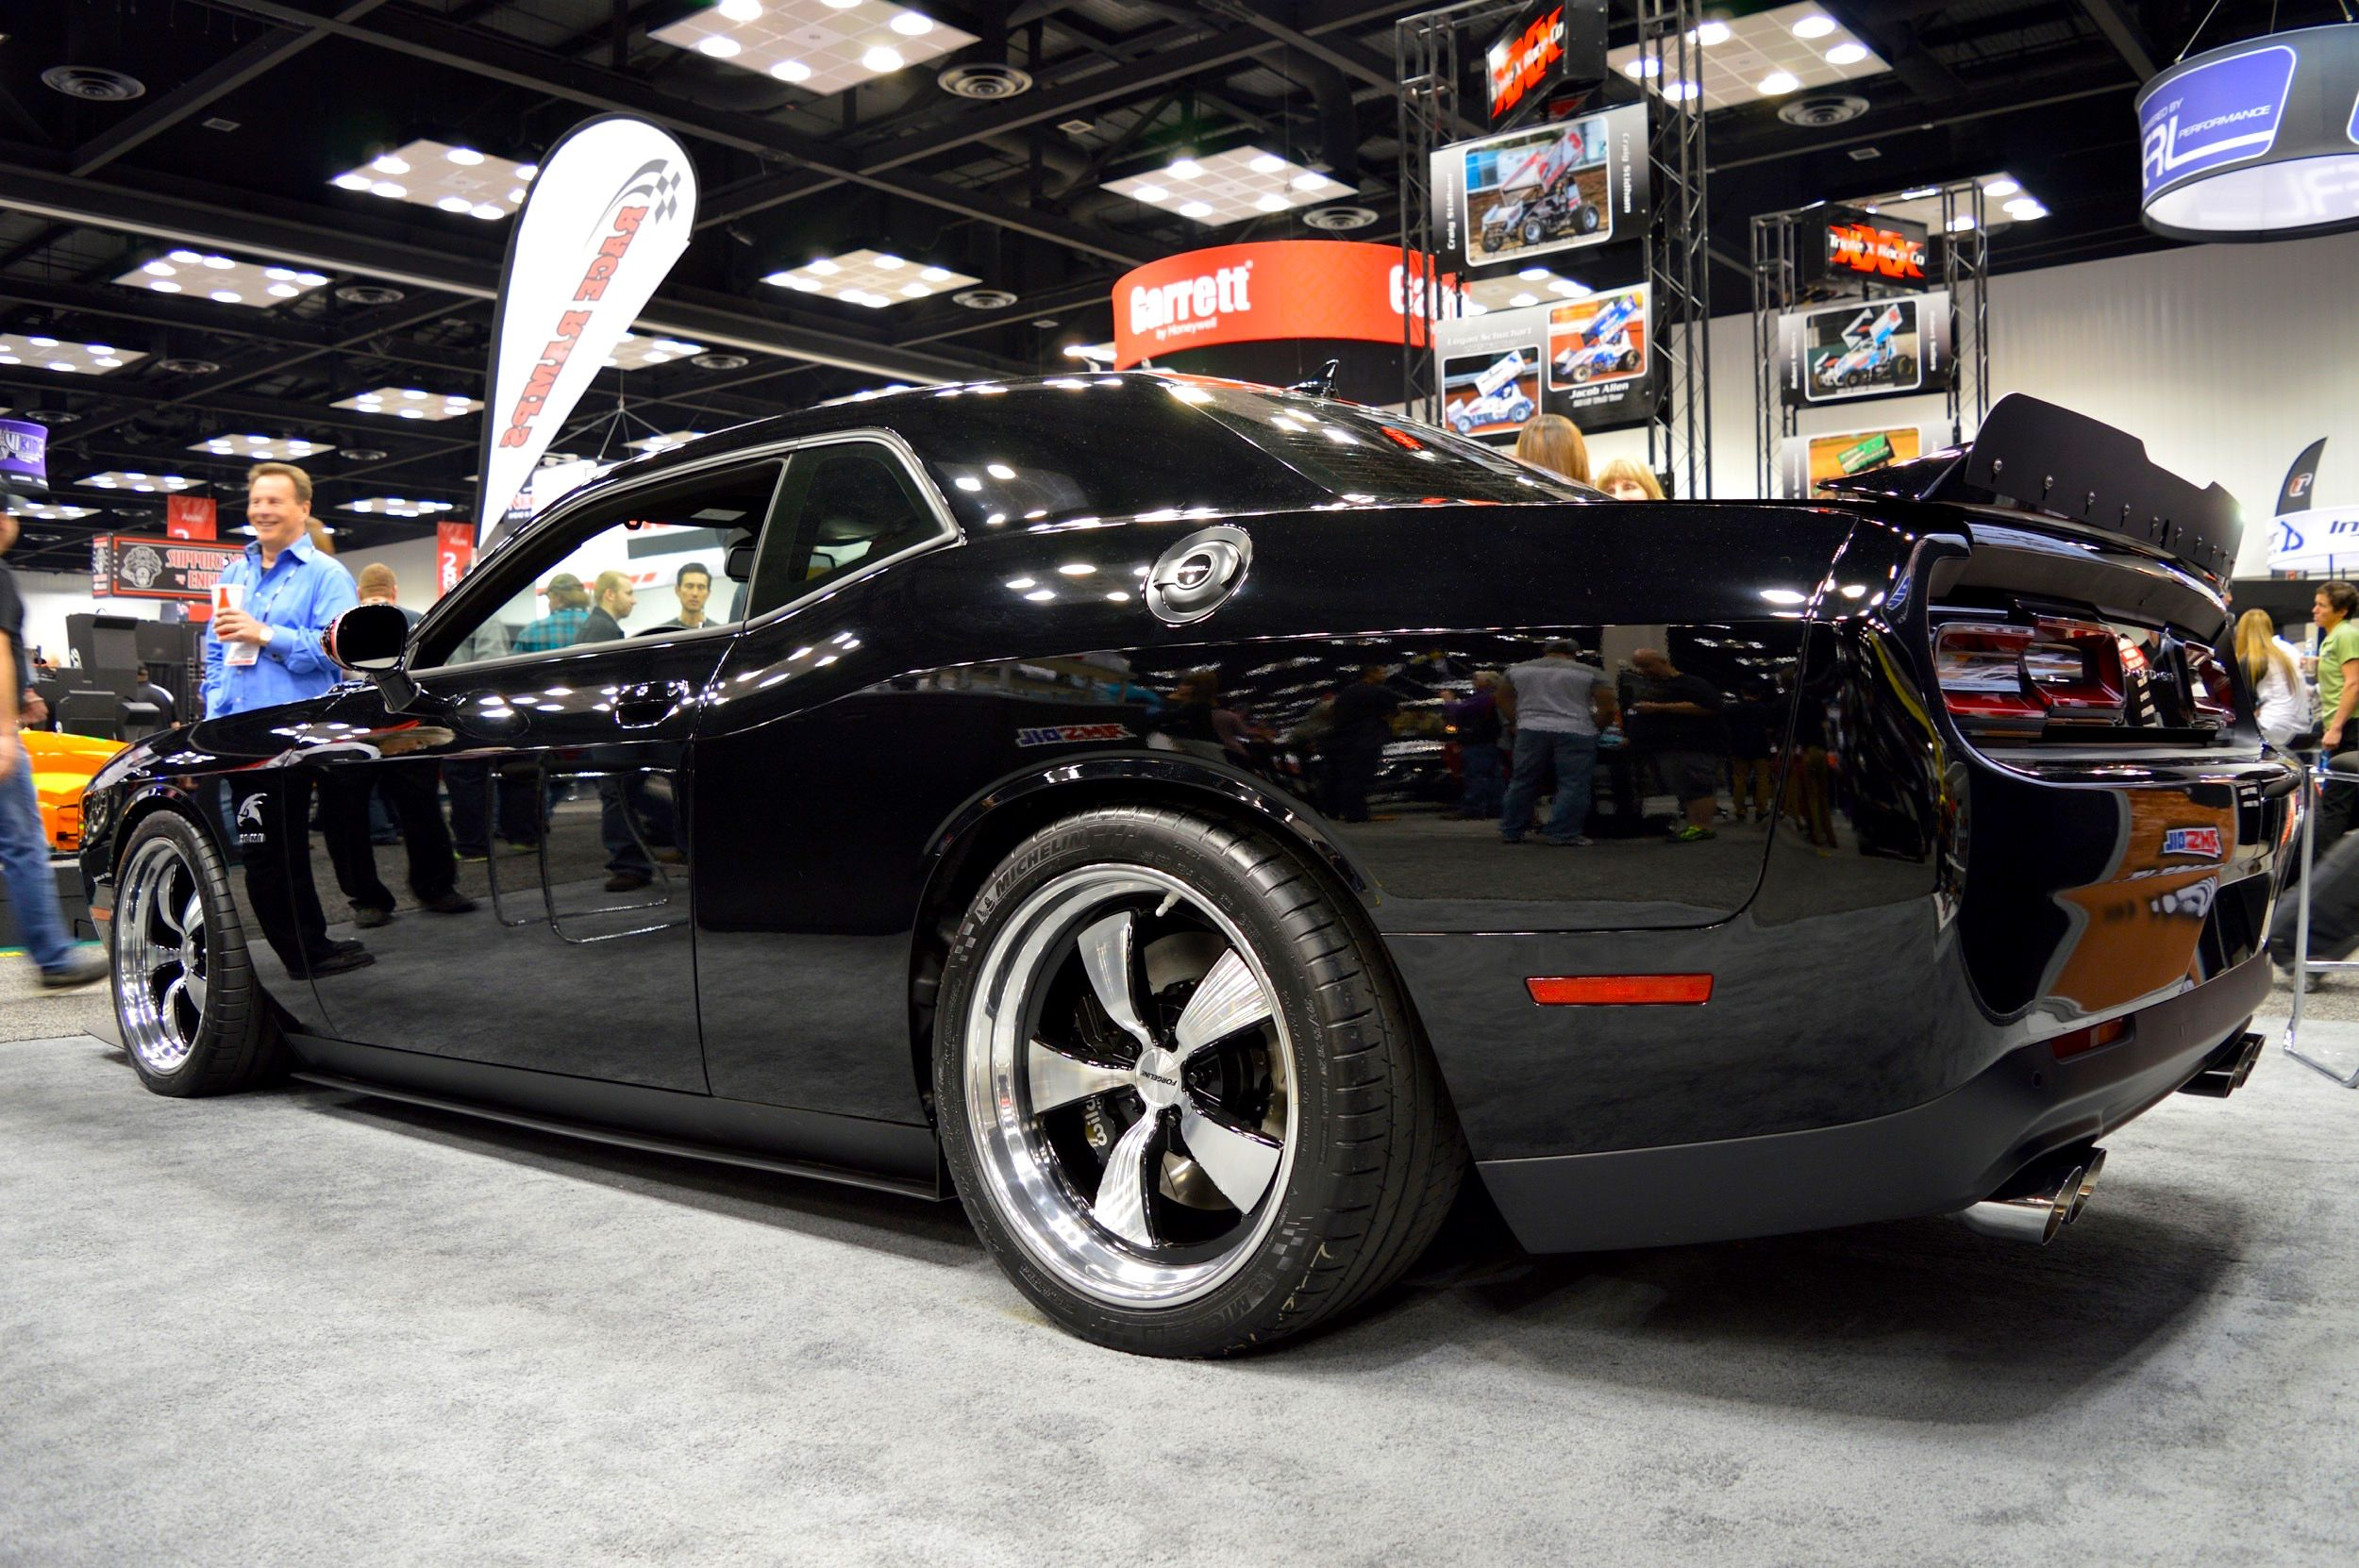 Bagged challenger r t stanceworks muscle cars pinterest dodge dodge challenger and cars